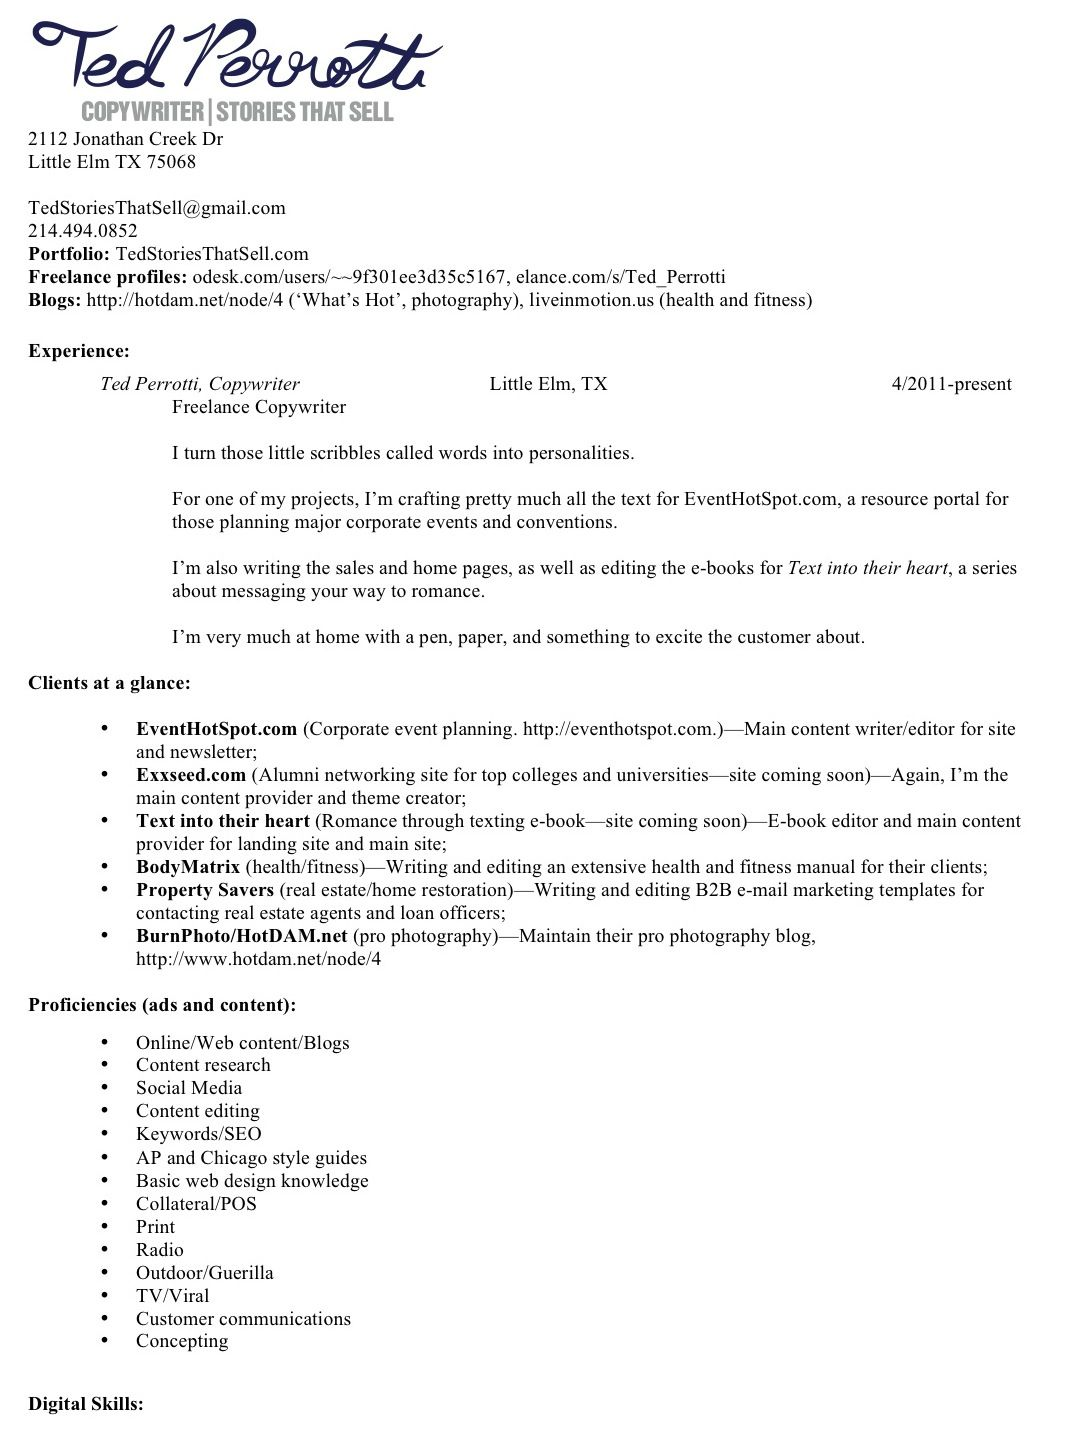 advertising copywriter sample resume aix administration cover letter 1376d7c2b315f0a2d66f94c2444b223f advertising copywriter sample resumehtml - Resume Specialist